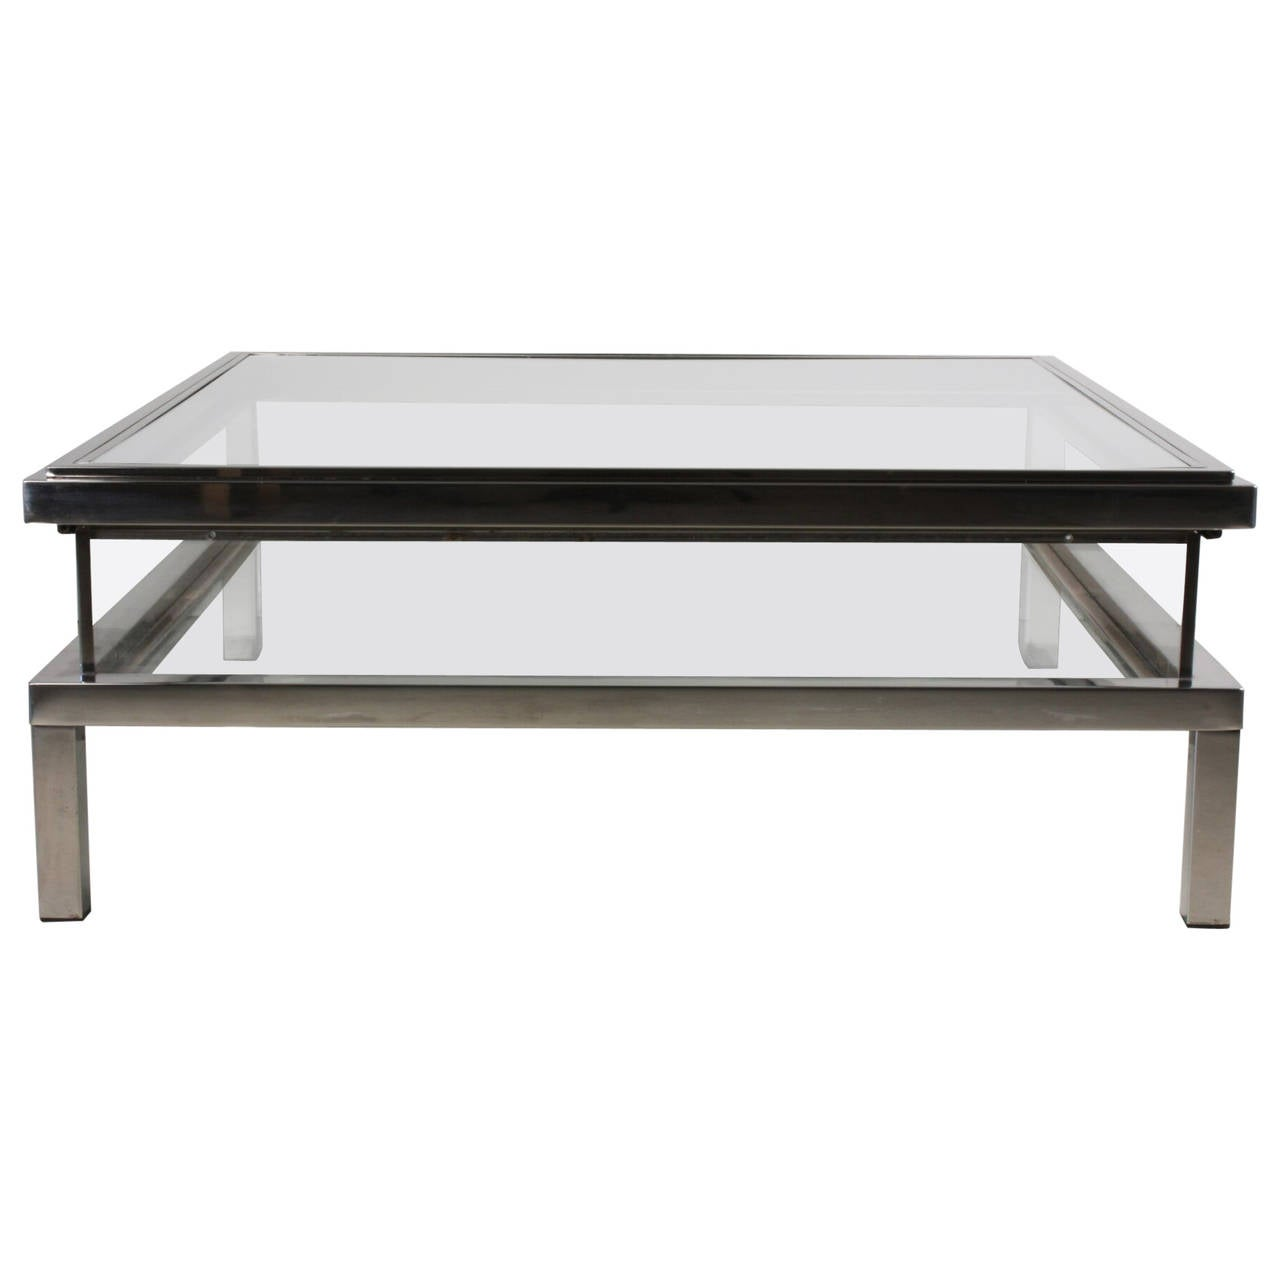 Maison jansen vitrine coffee table with sliding top at 1stdibs for Table vitrine